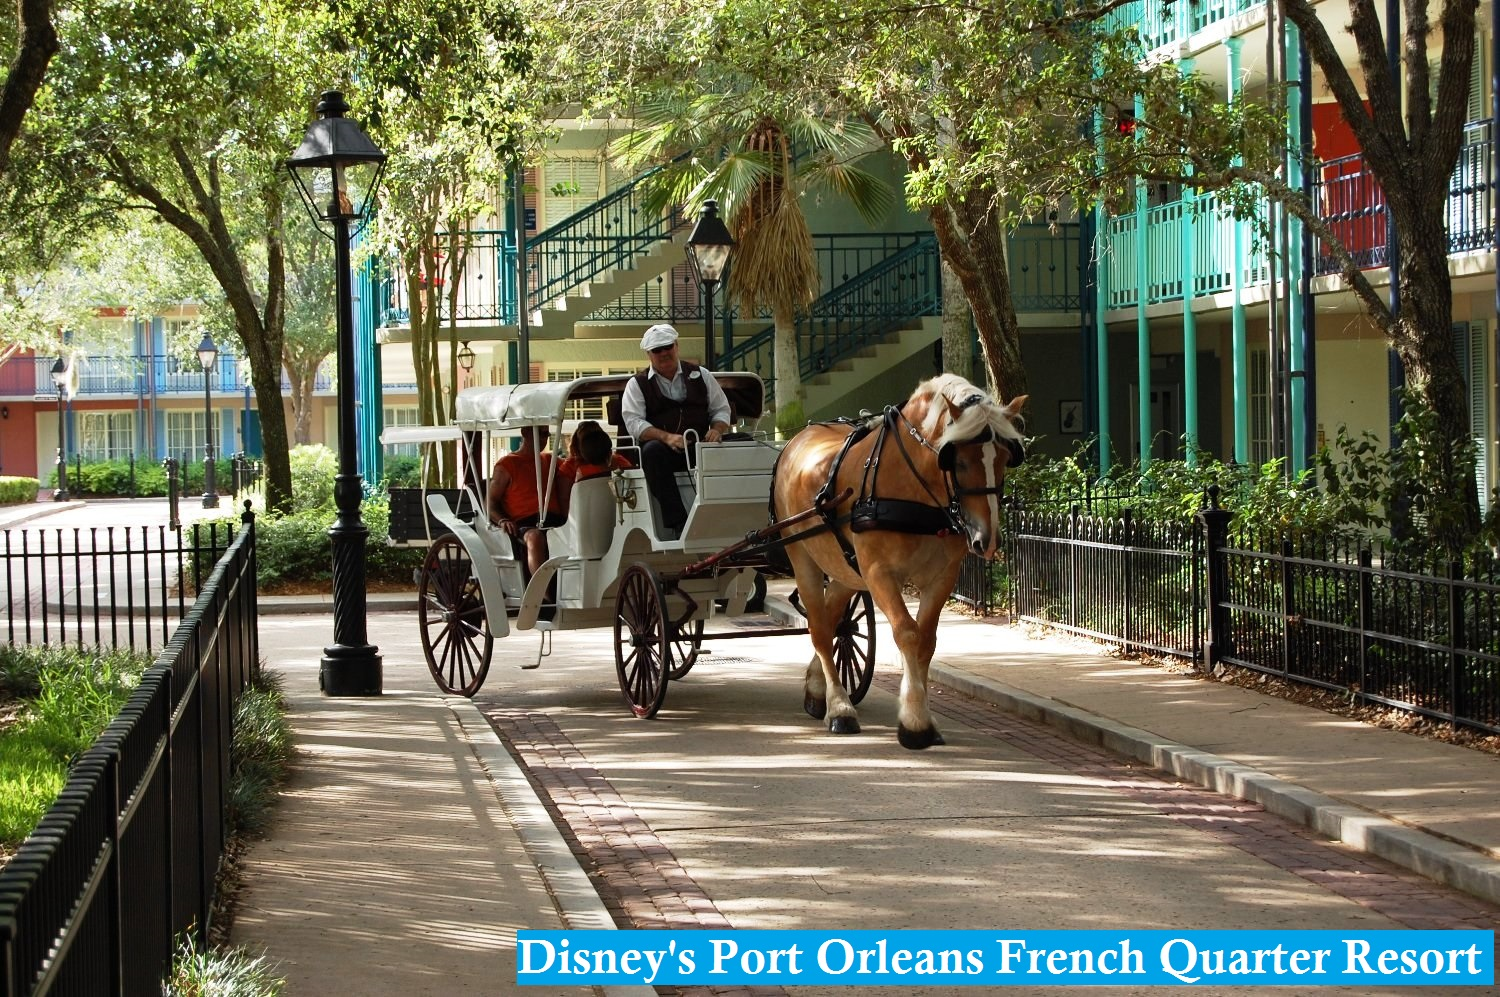 Disney's Port Orleans French Quarter Resort at Disney World in Florida.